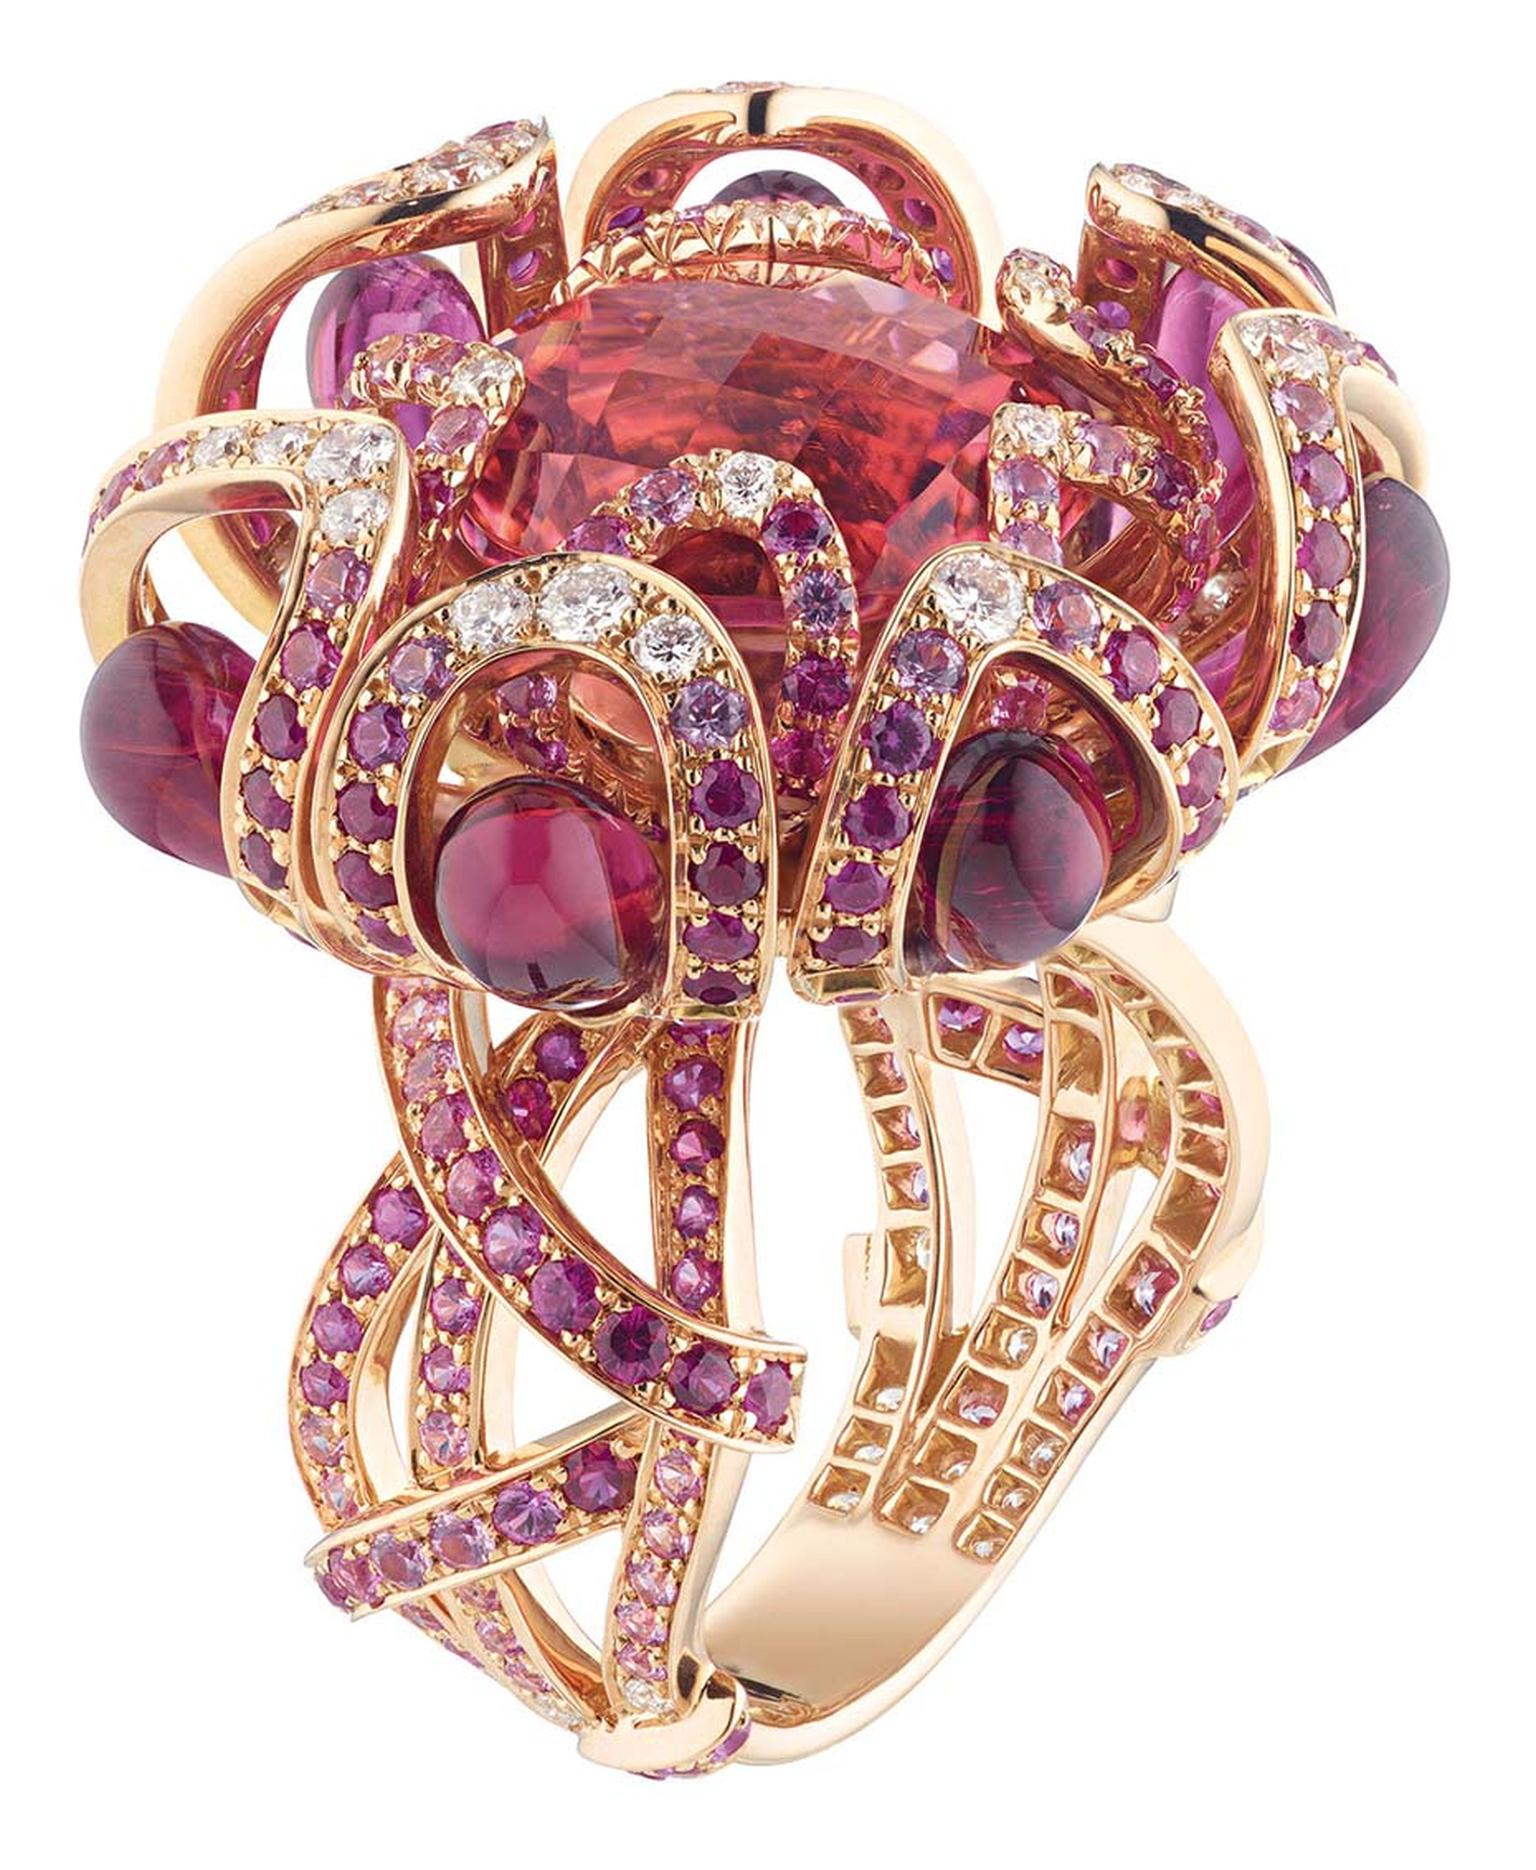 Chaumet Hortensia ring in pink gold, set with rubies, pink sapphires, diamonds, red tourmaline drops and an 8.60ct round faceted pink tourmaline in the centre.